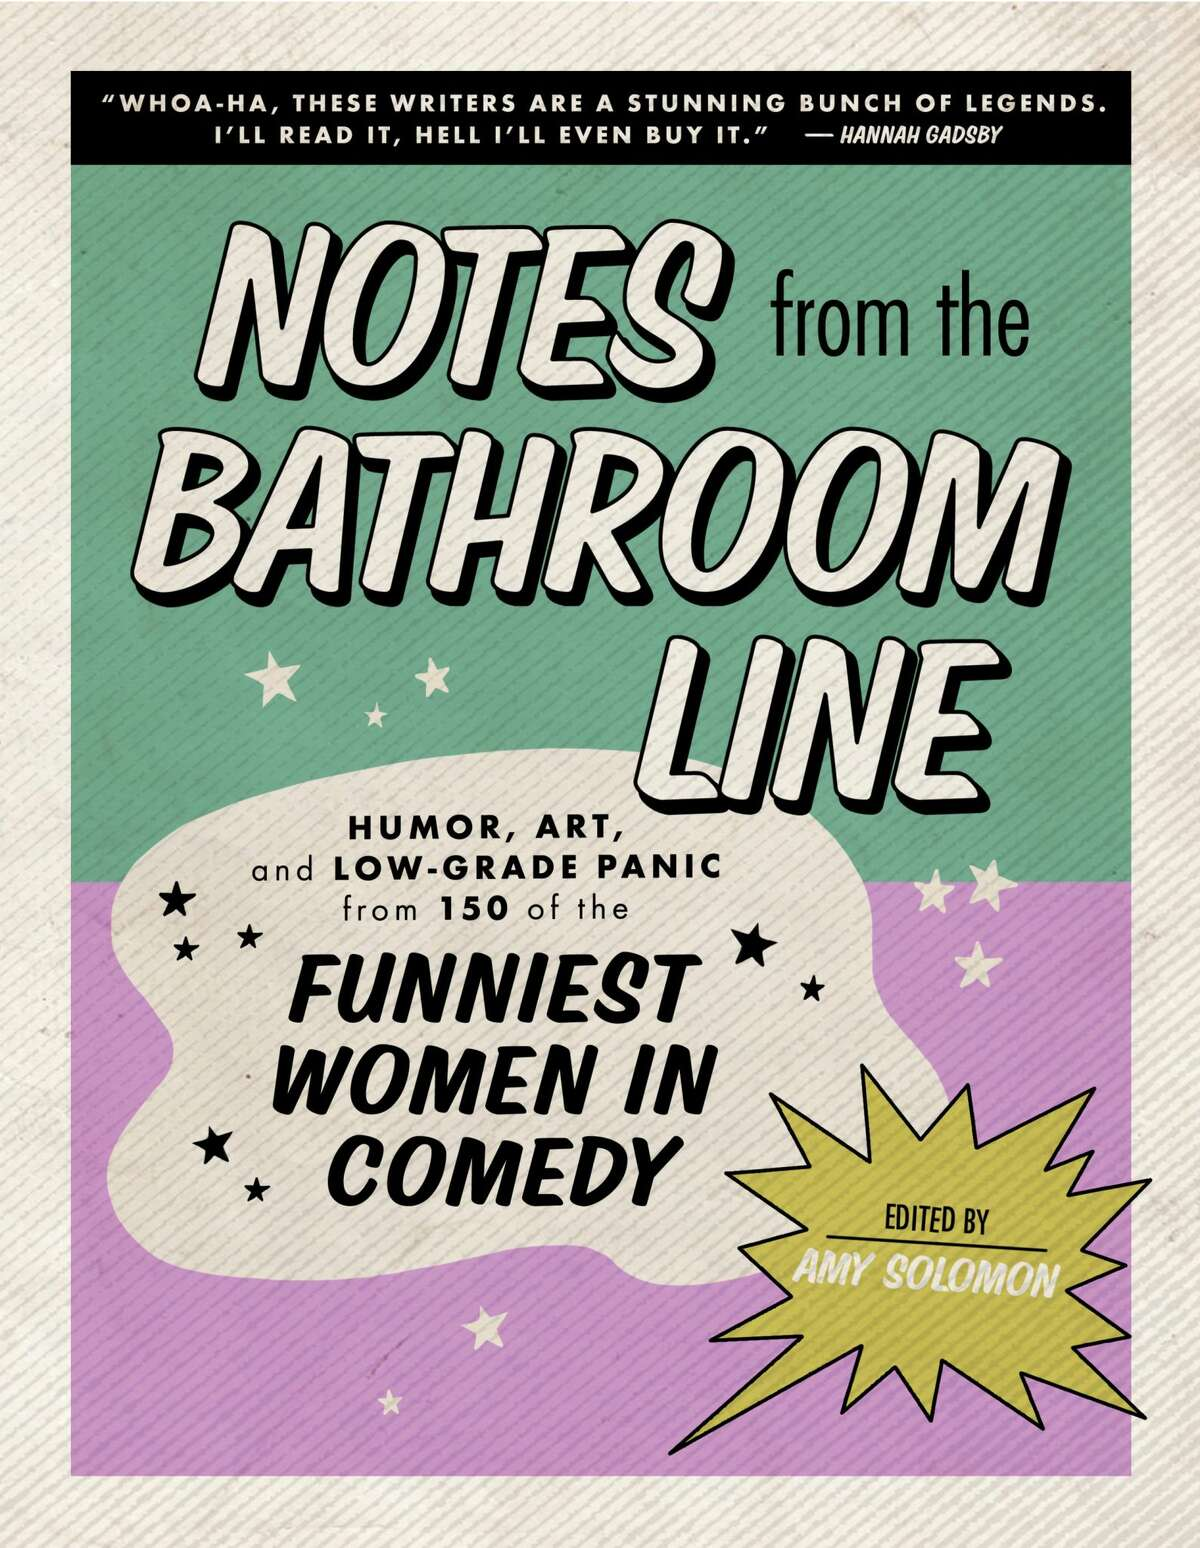 """Amy Soloman, producer for HBO's """"Barry"""" and """"Silicon Valley,"""" curated essays, fiction and poetry from more than 150 women in comedy."""